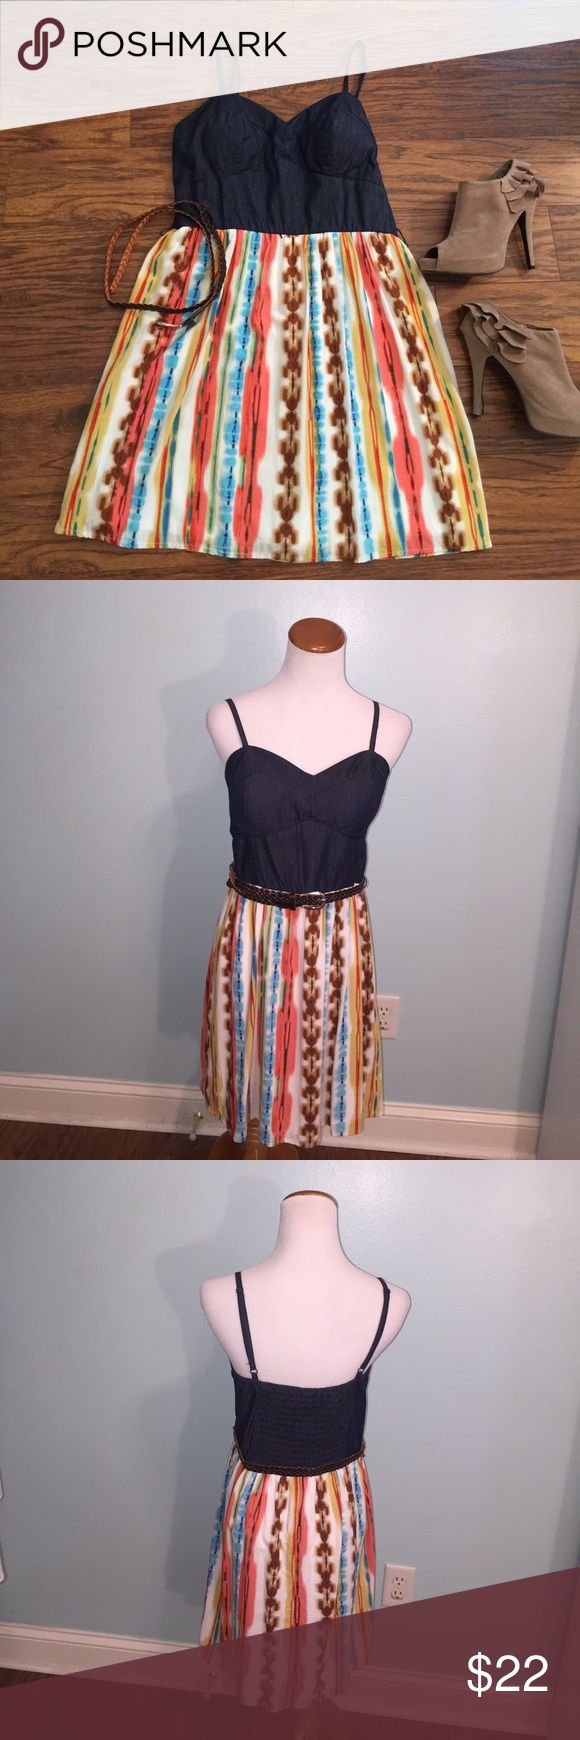 Belted sundress with padded bra cups Size large (juniors). Mini sundress with padded bra cups. Fully lined! Comes with brown woven belt. Features drake ask chambray bustier style too with adjustable straps and elastic panel in back. Skirt is multi colored to die with Southwest appeal. Super cute for Summer! As U Wish Dresses Mini